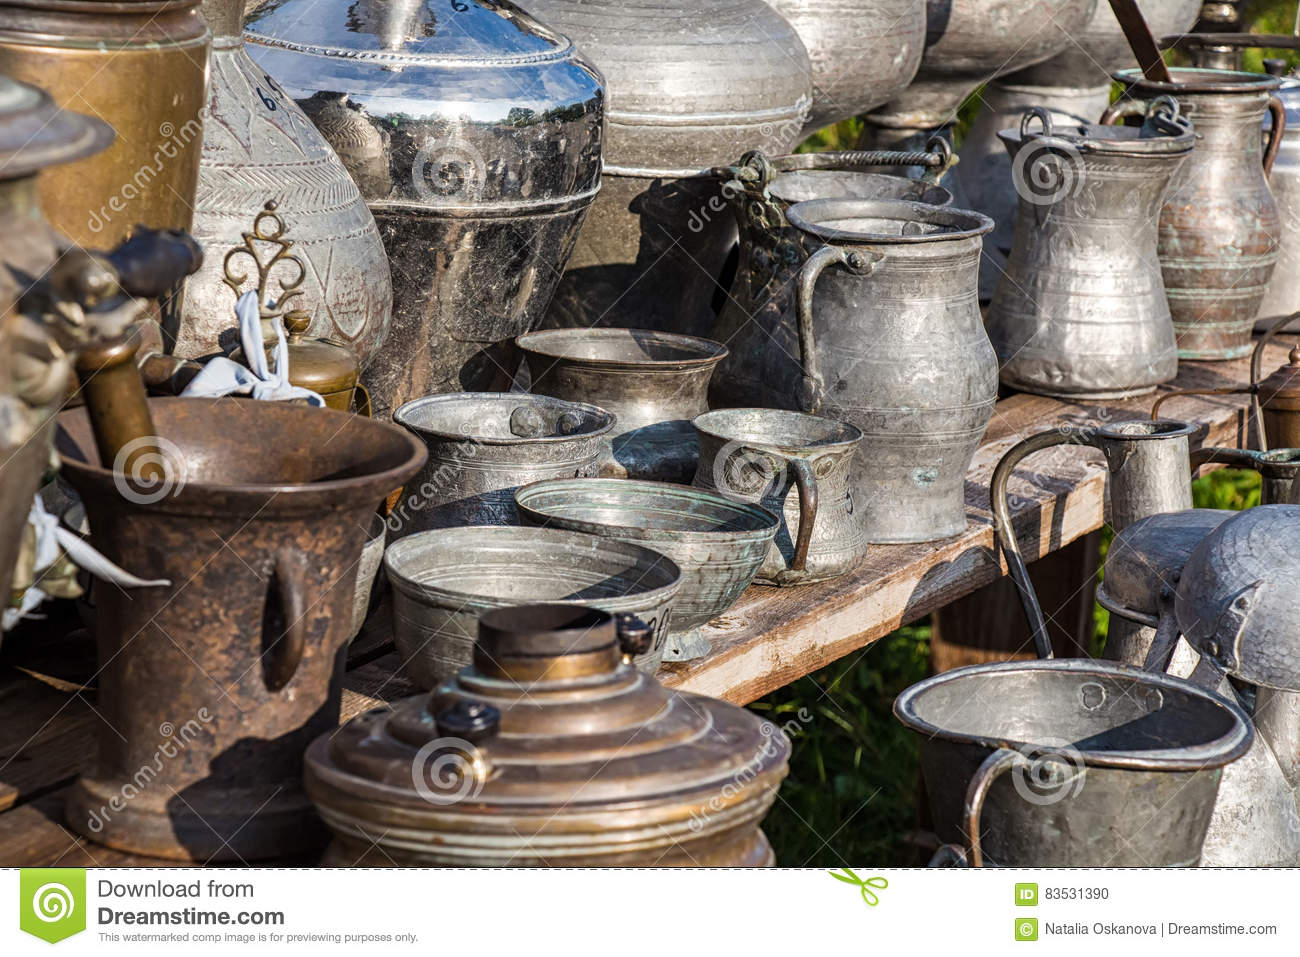 Antique jugs and dishes